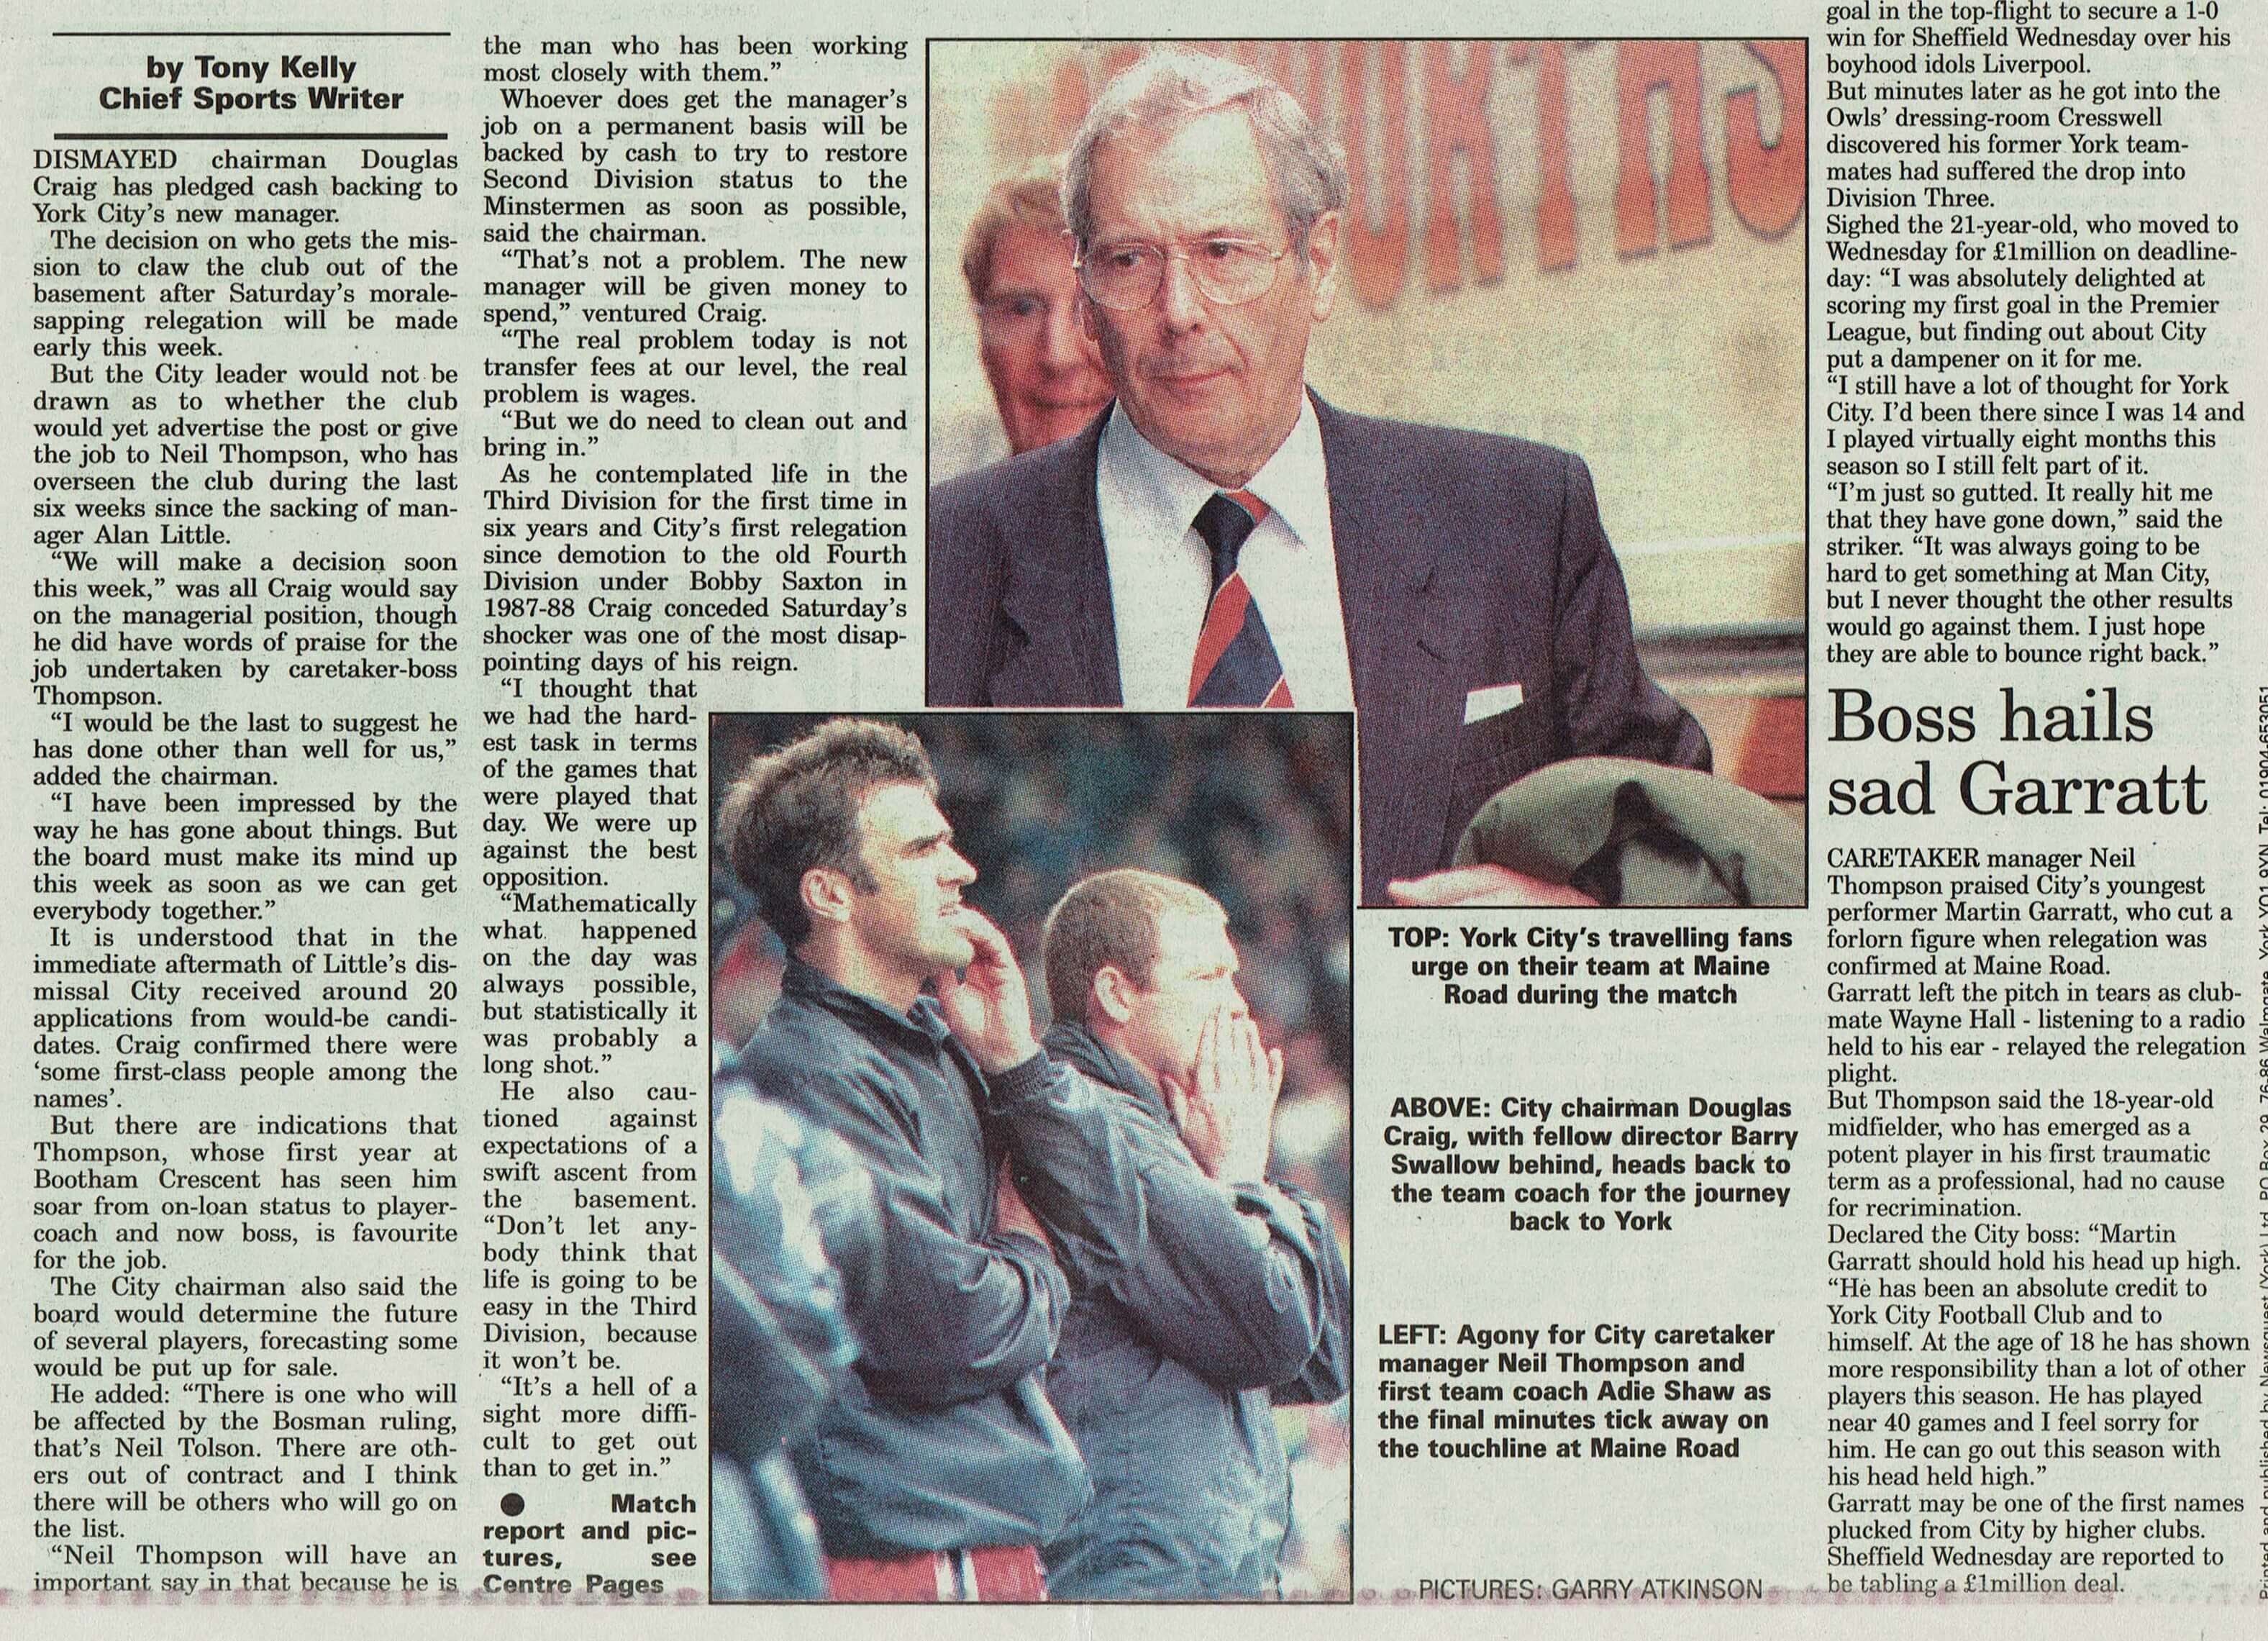 1999 - 2 years earlier and relegation (YEP 990510)